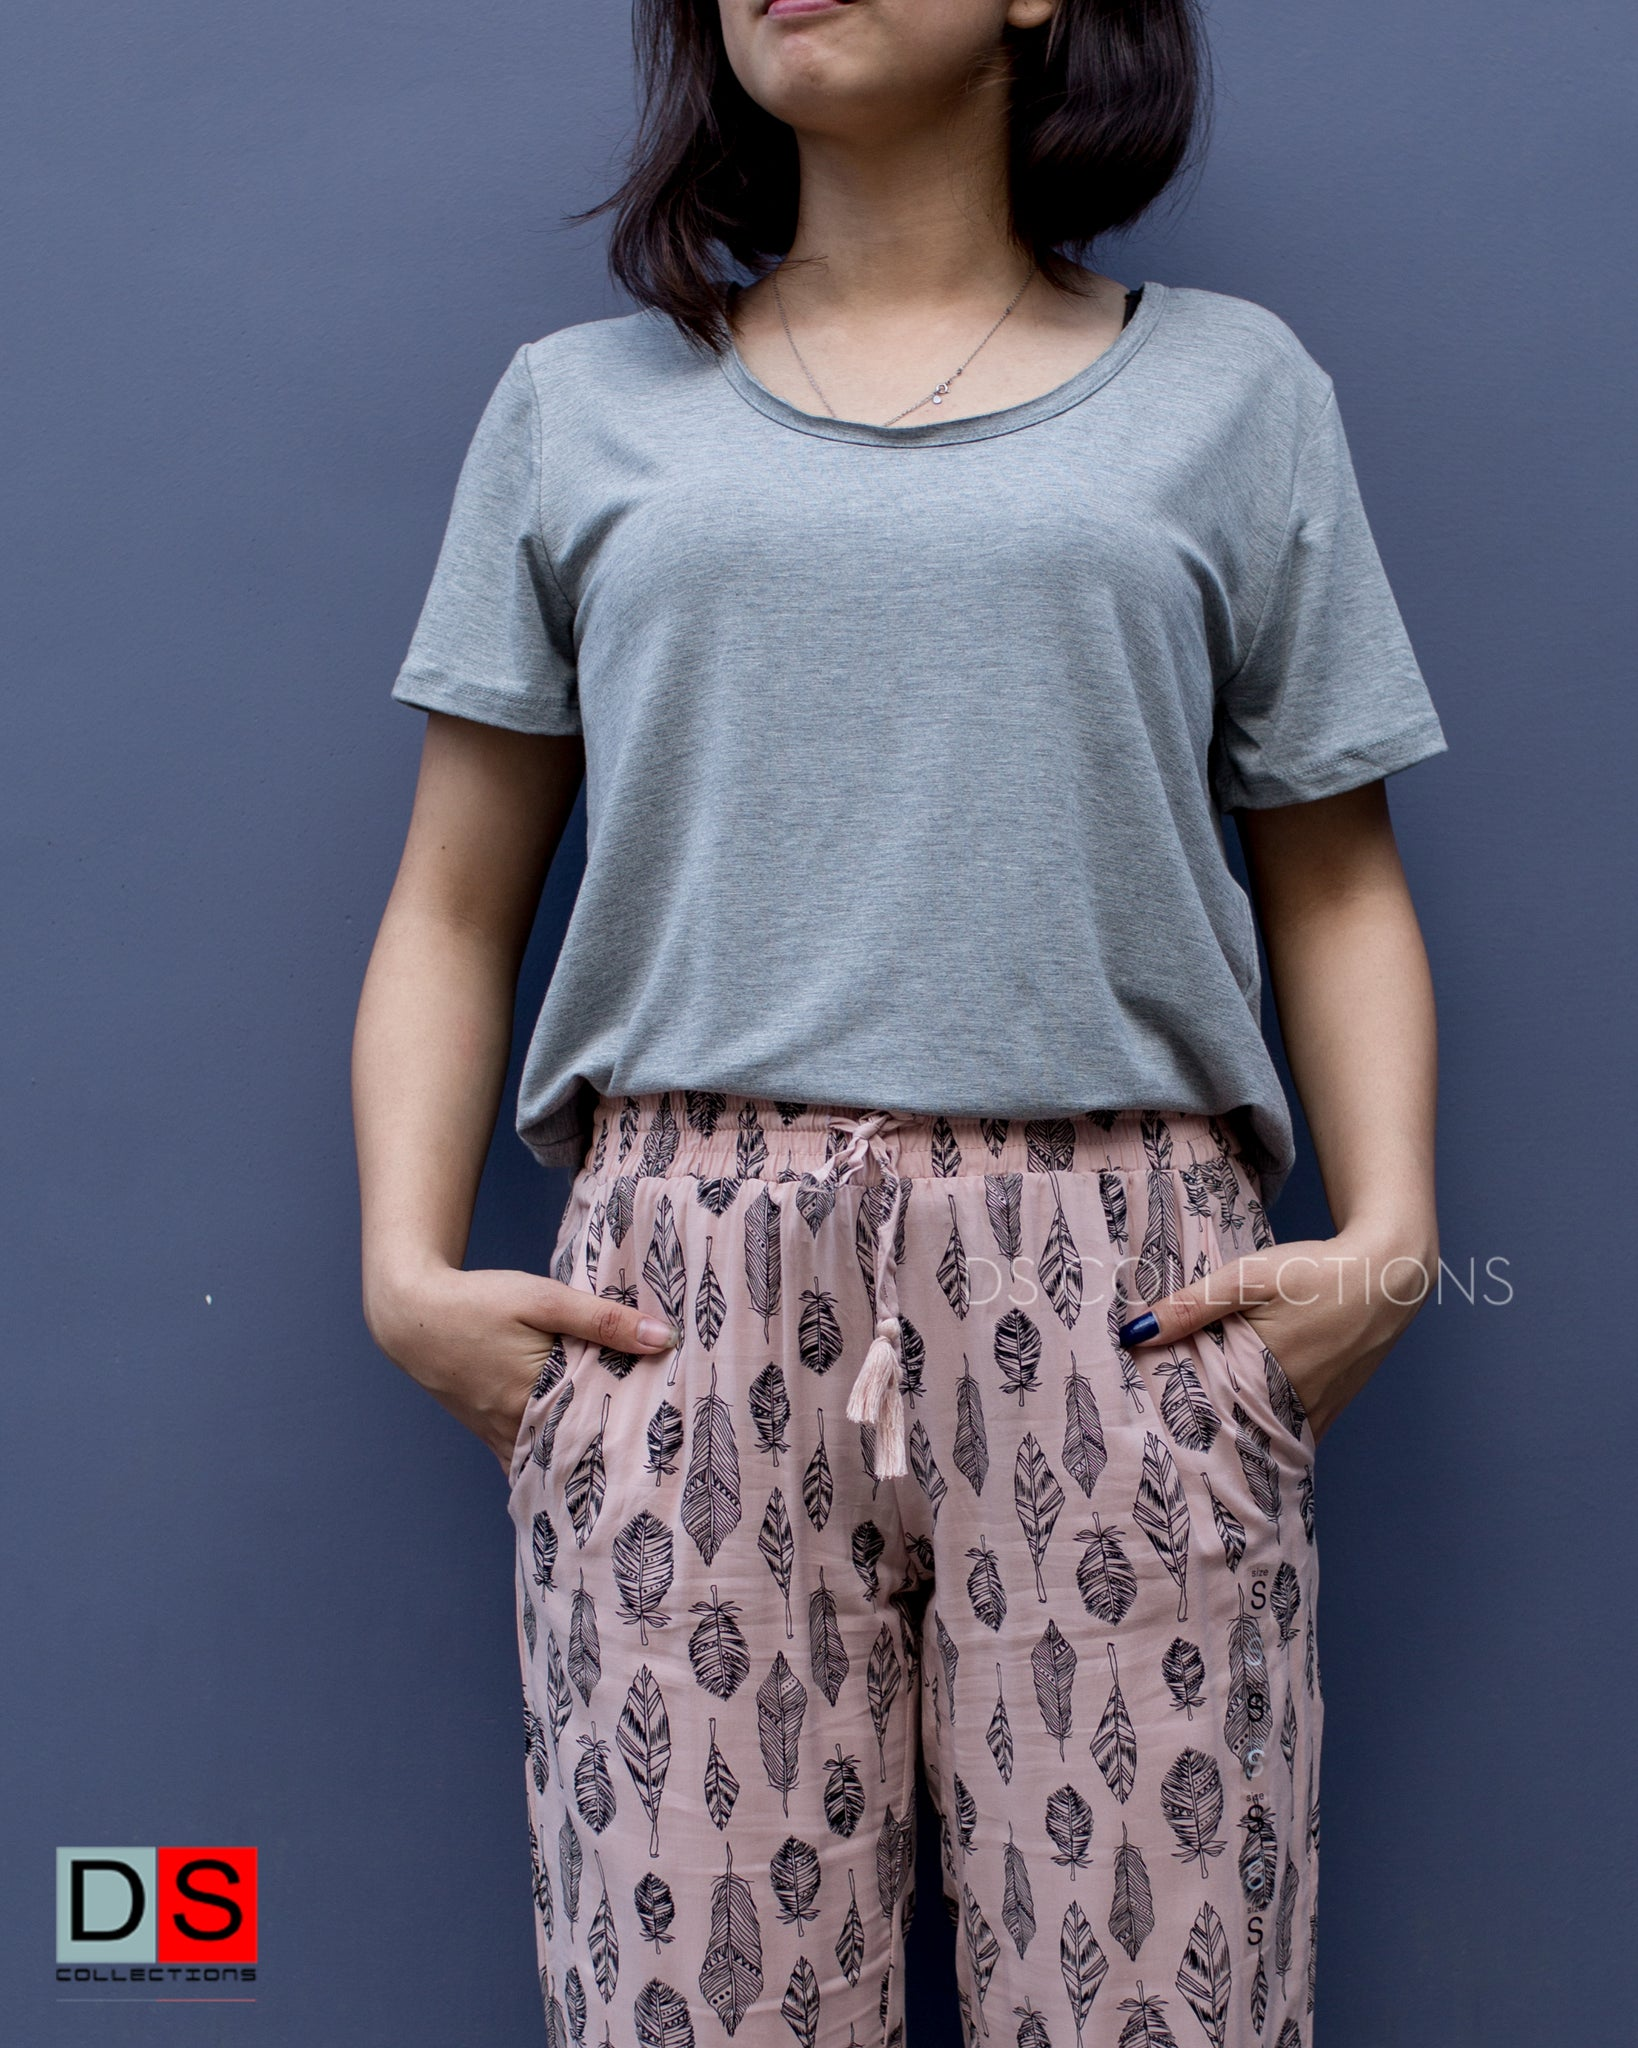 Women's Trouser - Printed trousers | DS Collections Nepal